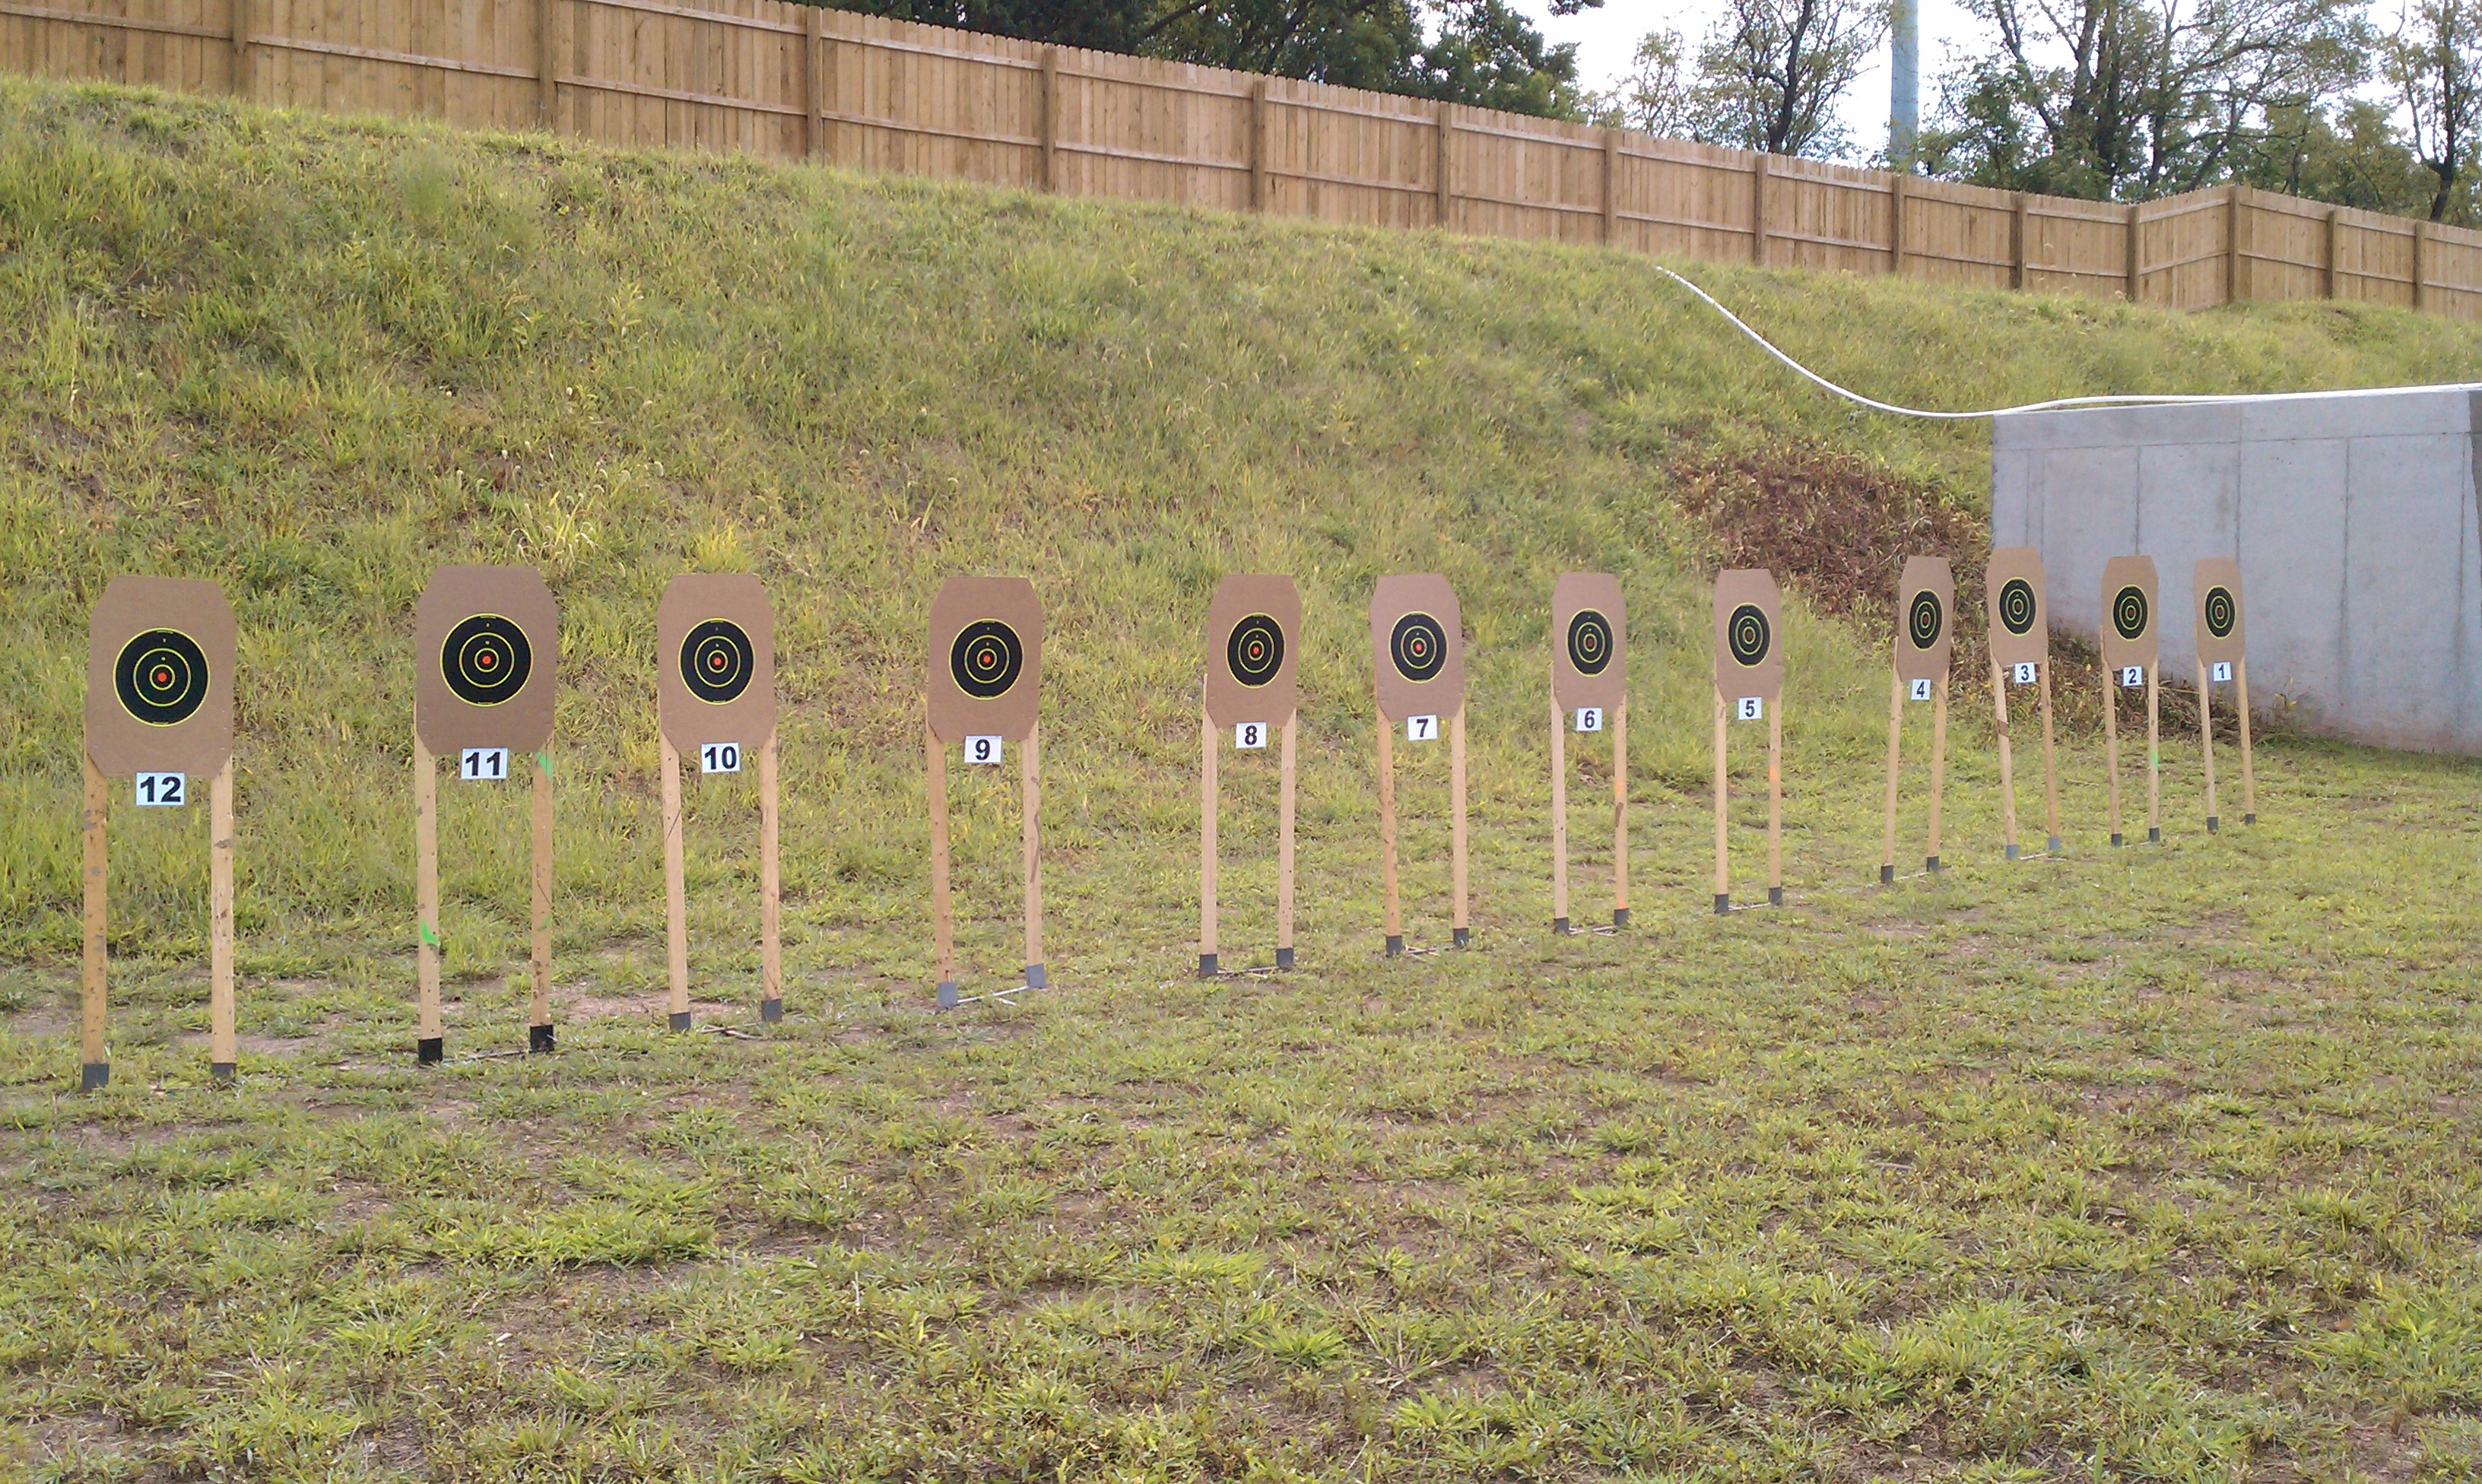 Is open for rifle and pistol shooting from a covered firing line